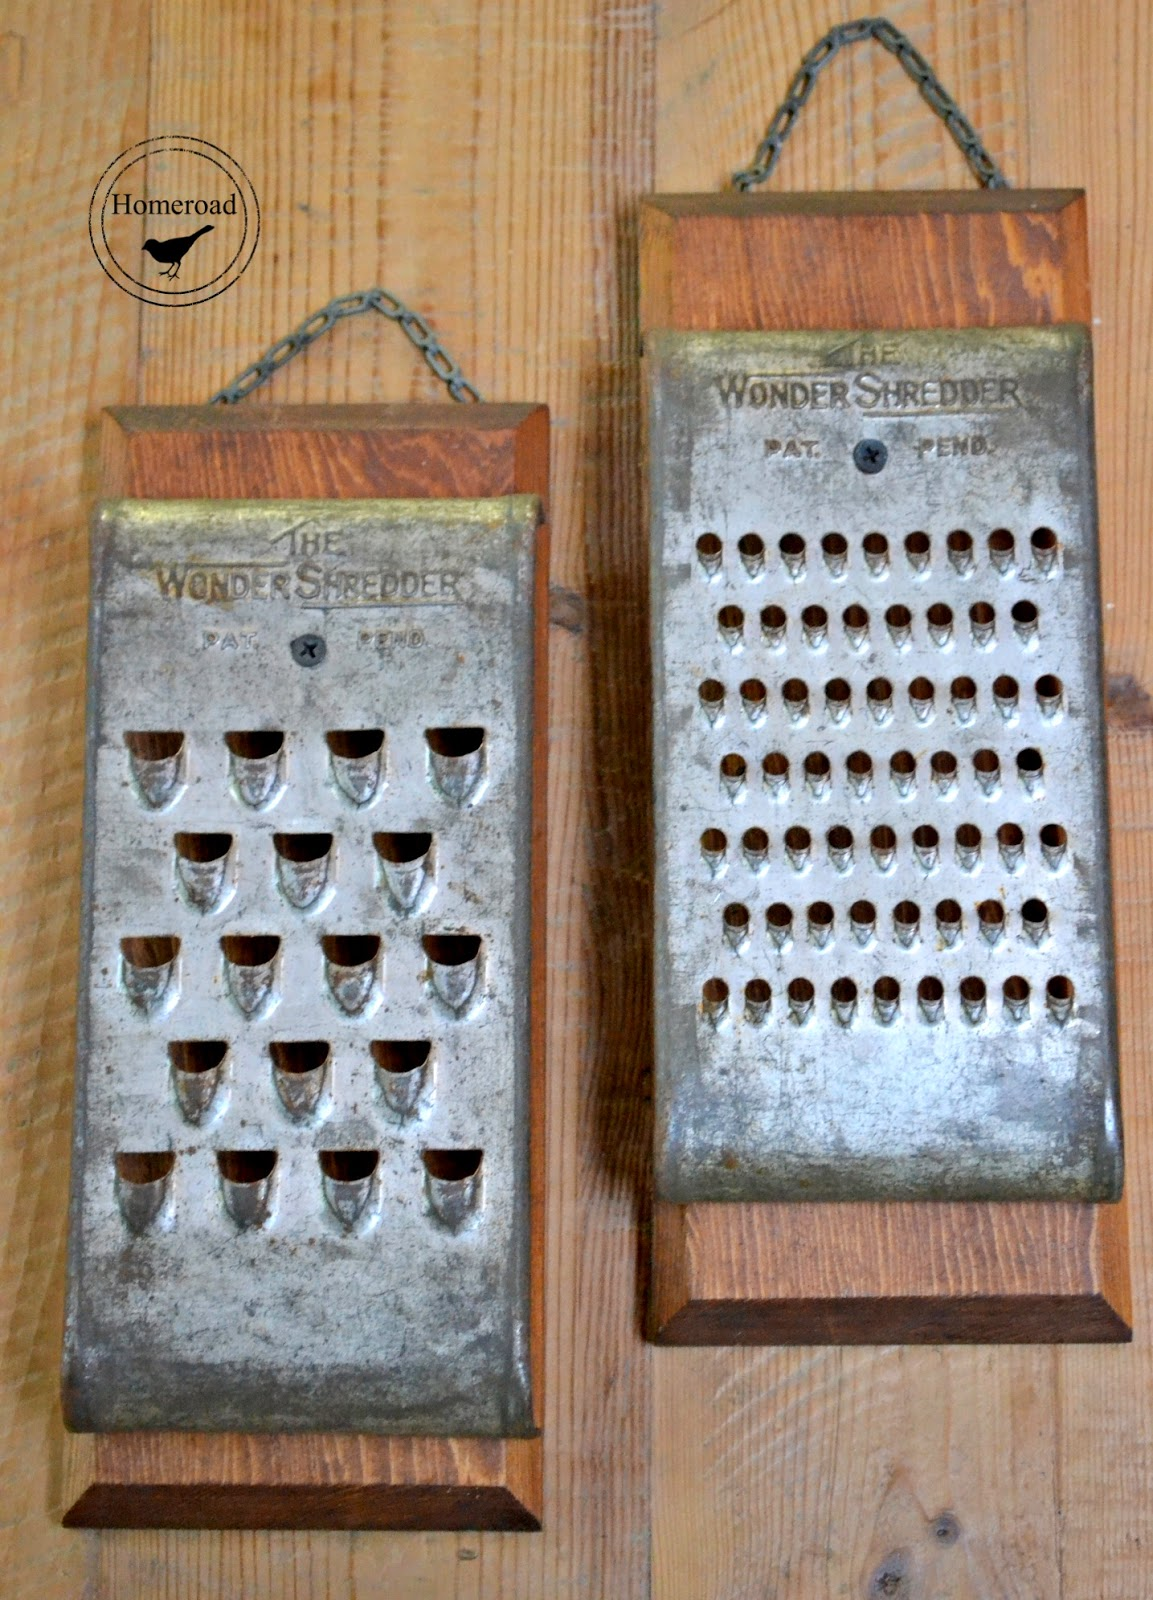 Vintage Signs For Sale >> Cheese Grater Earring Holders | Homeroad